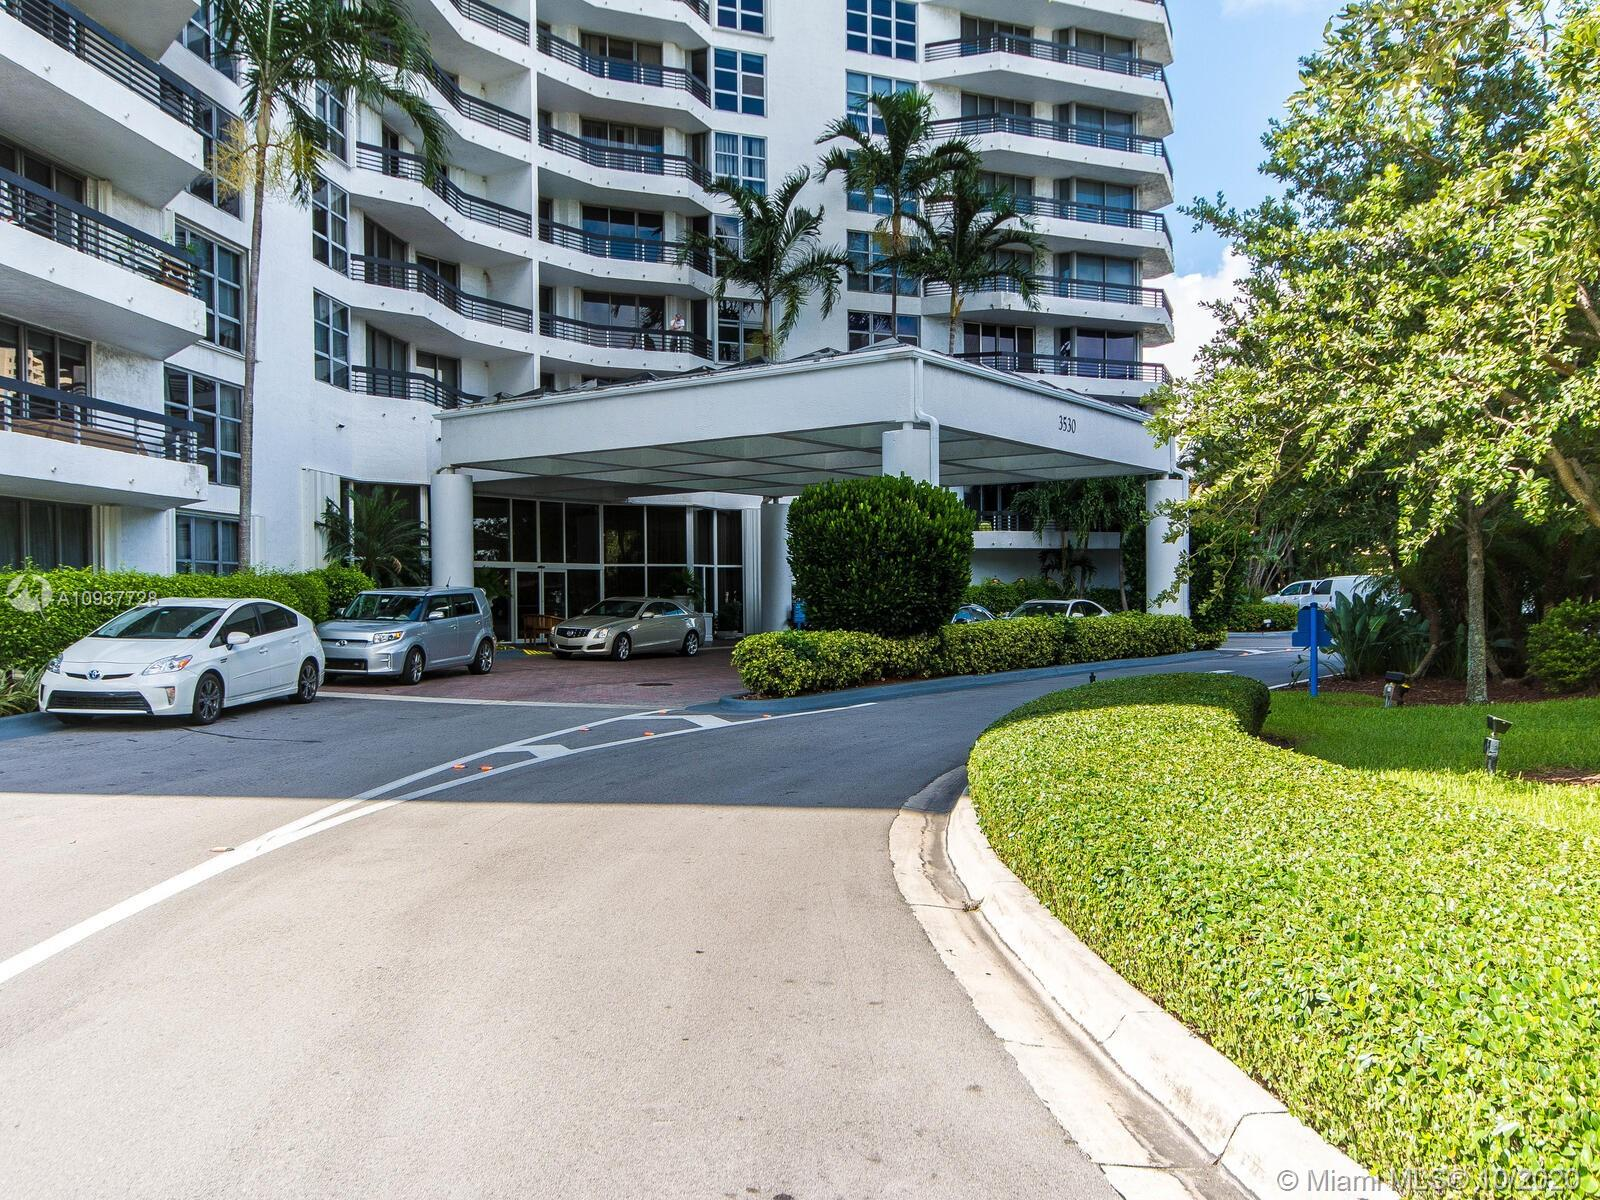 Mystic Pointe Tower 500 #3014 - 3530 Mystic Pointe Dr #3014, Aventura, FL 33180